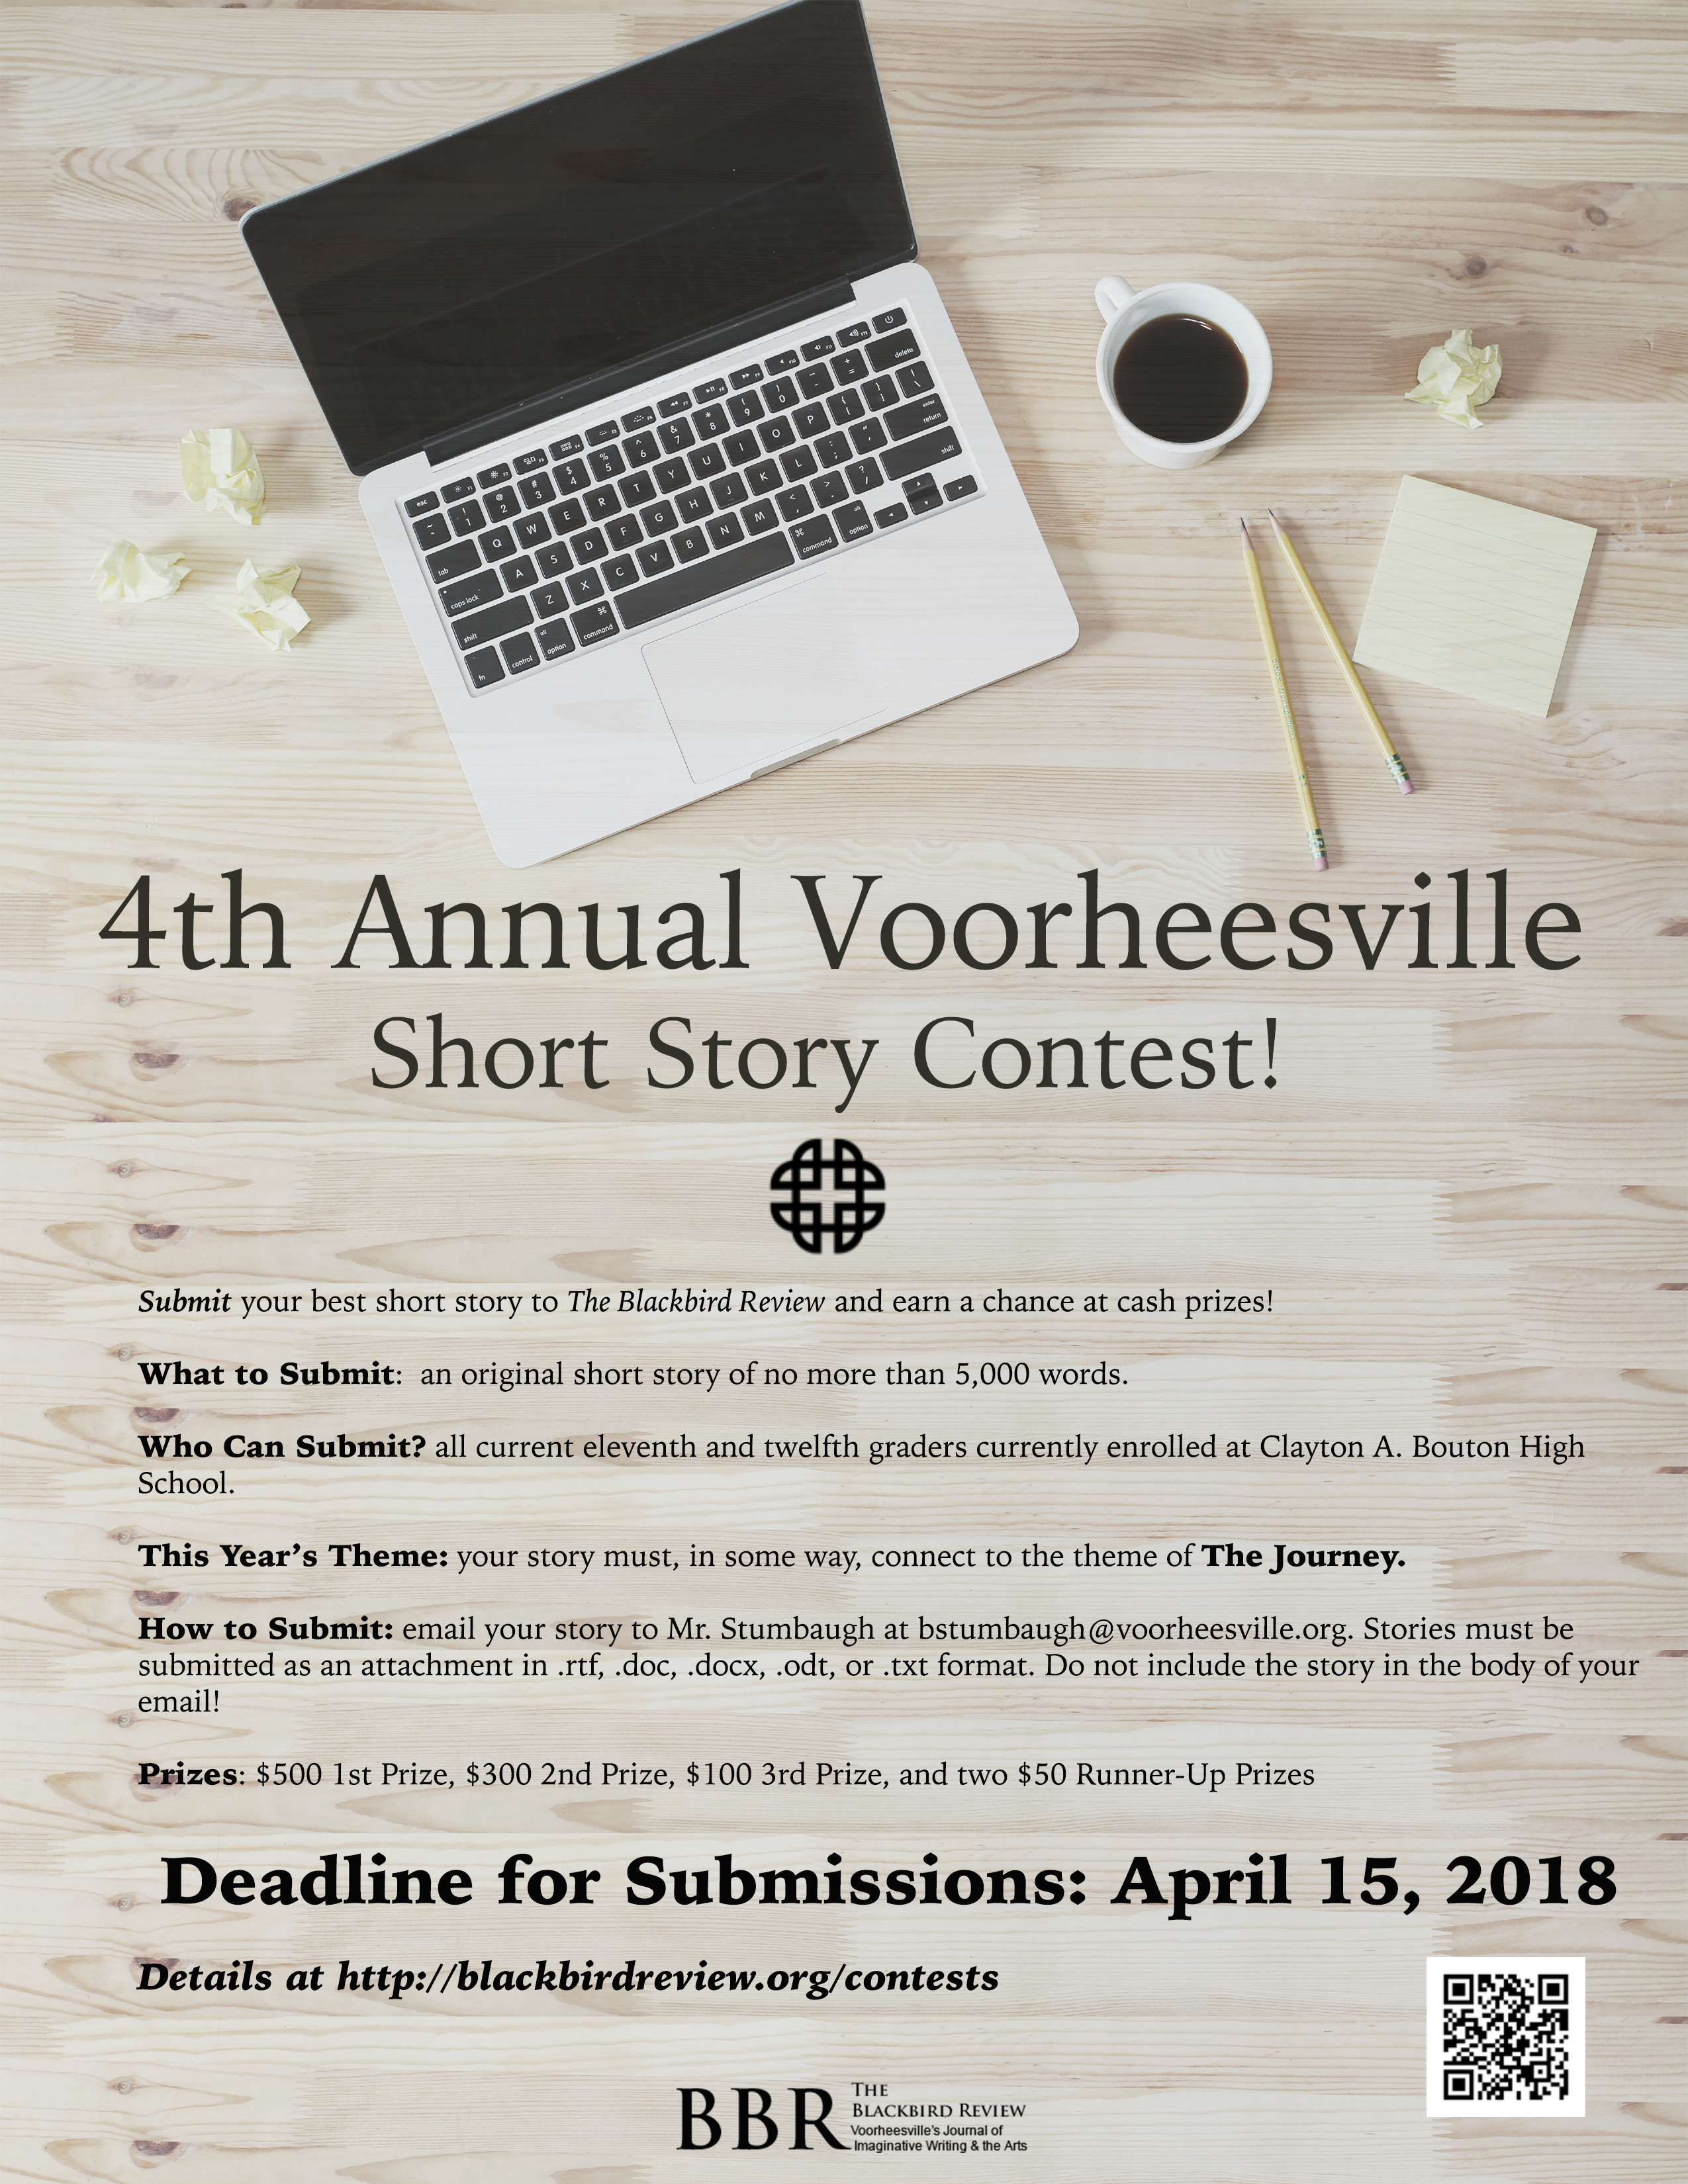 4th Annual Short Story Contest Announced! - The Blackbird Review